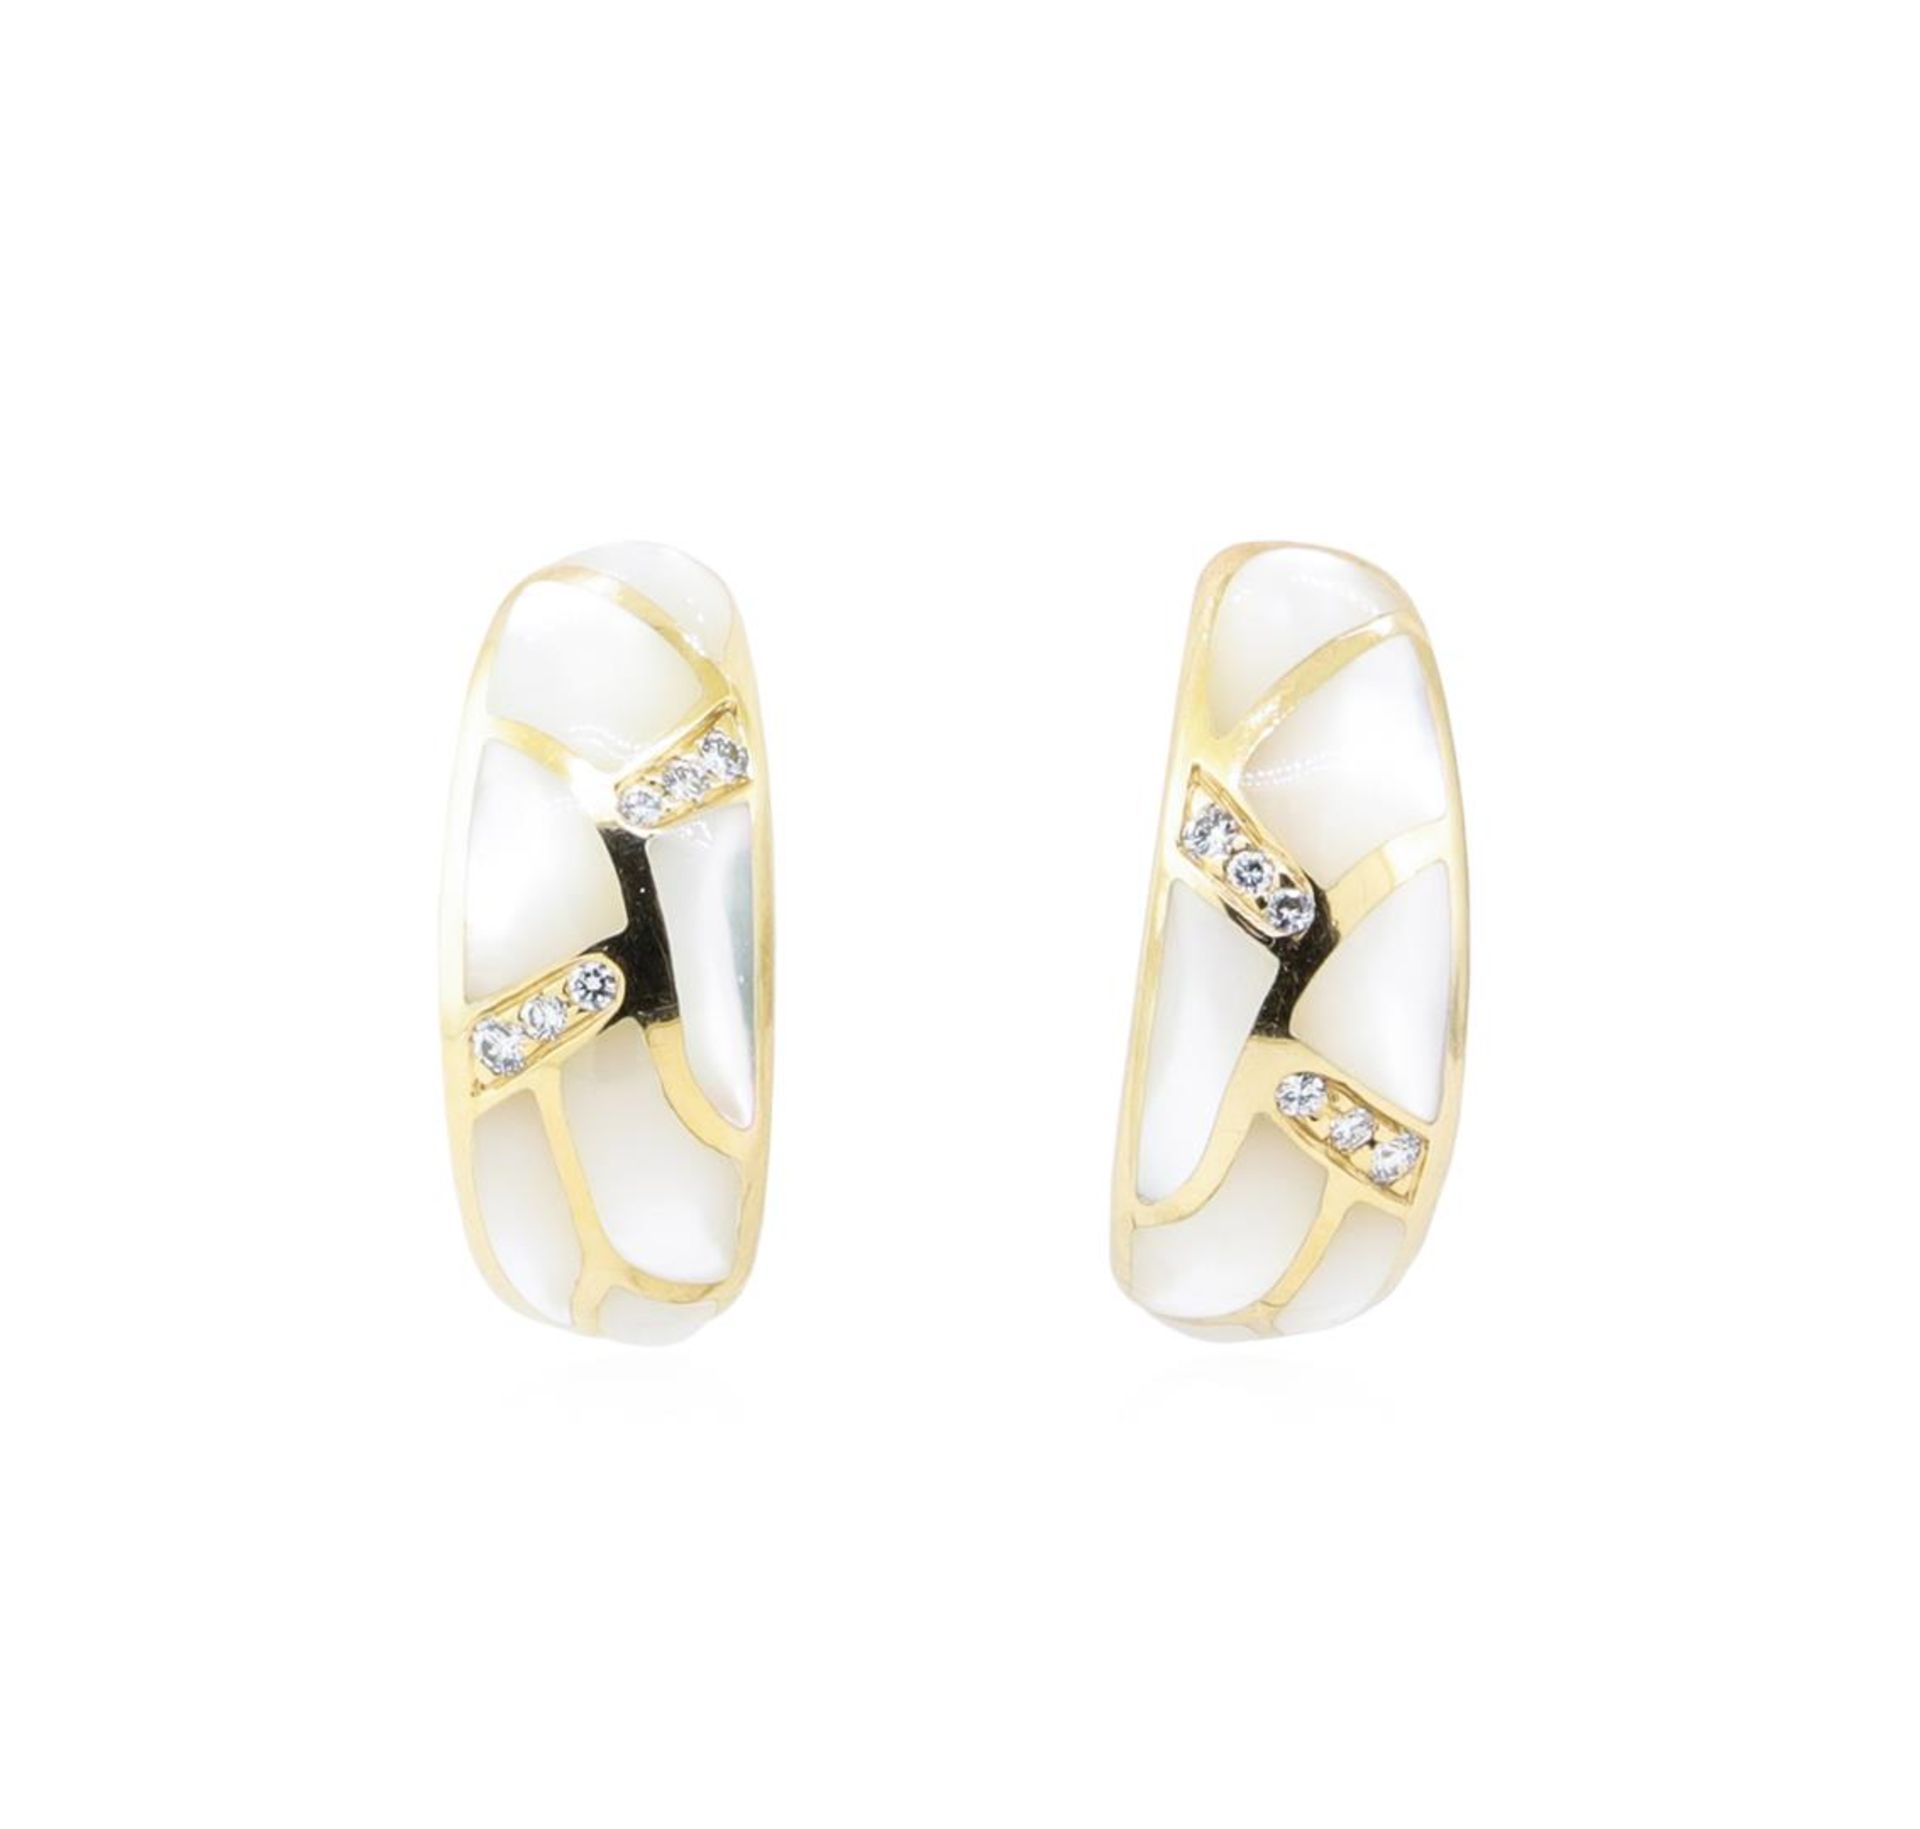 Kabana 0.25ctw Diamond and Inlaid Mother of Pearl Earrings - 14KT Yellow Gold